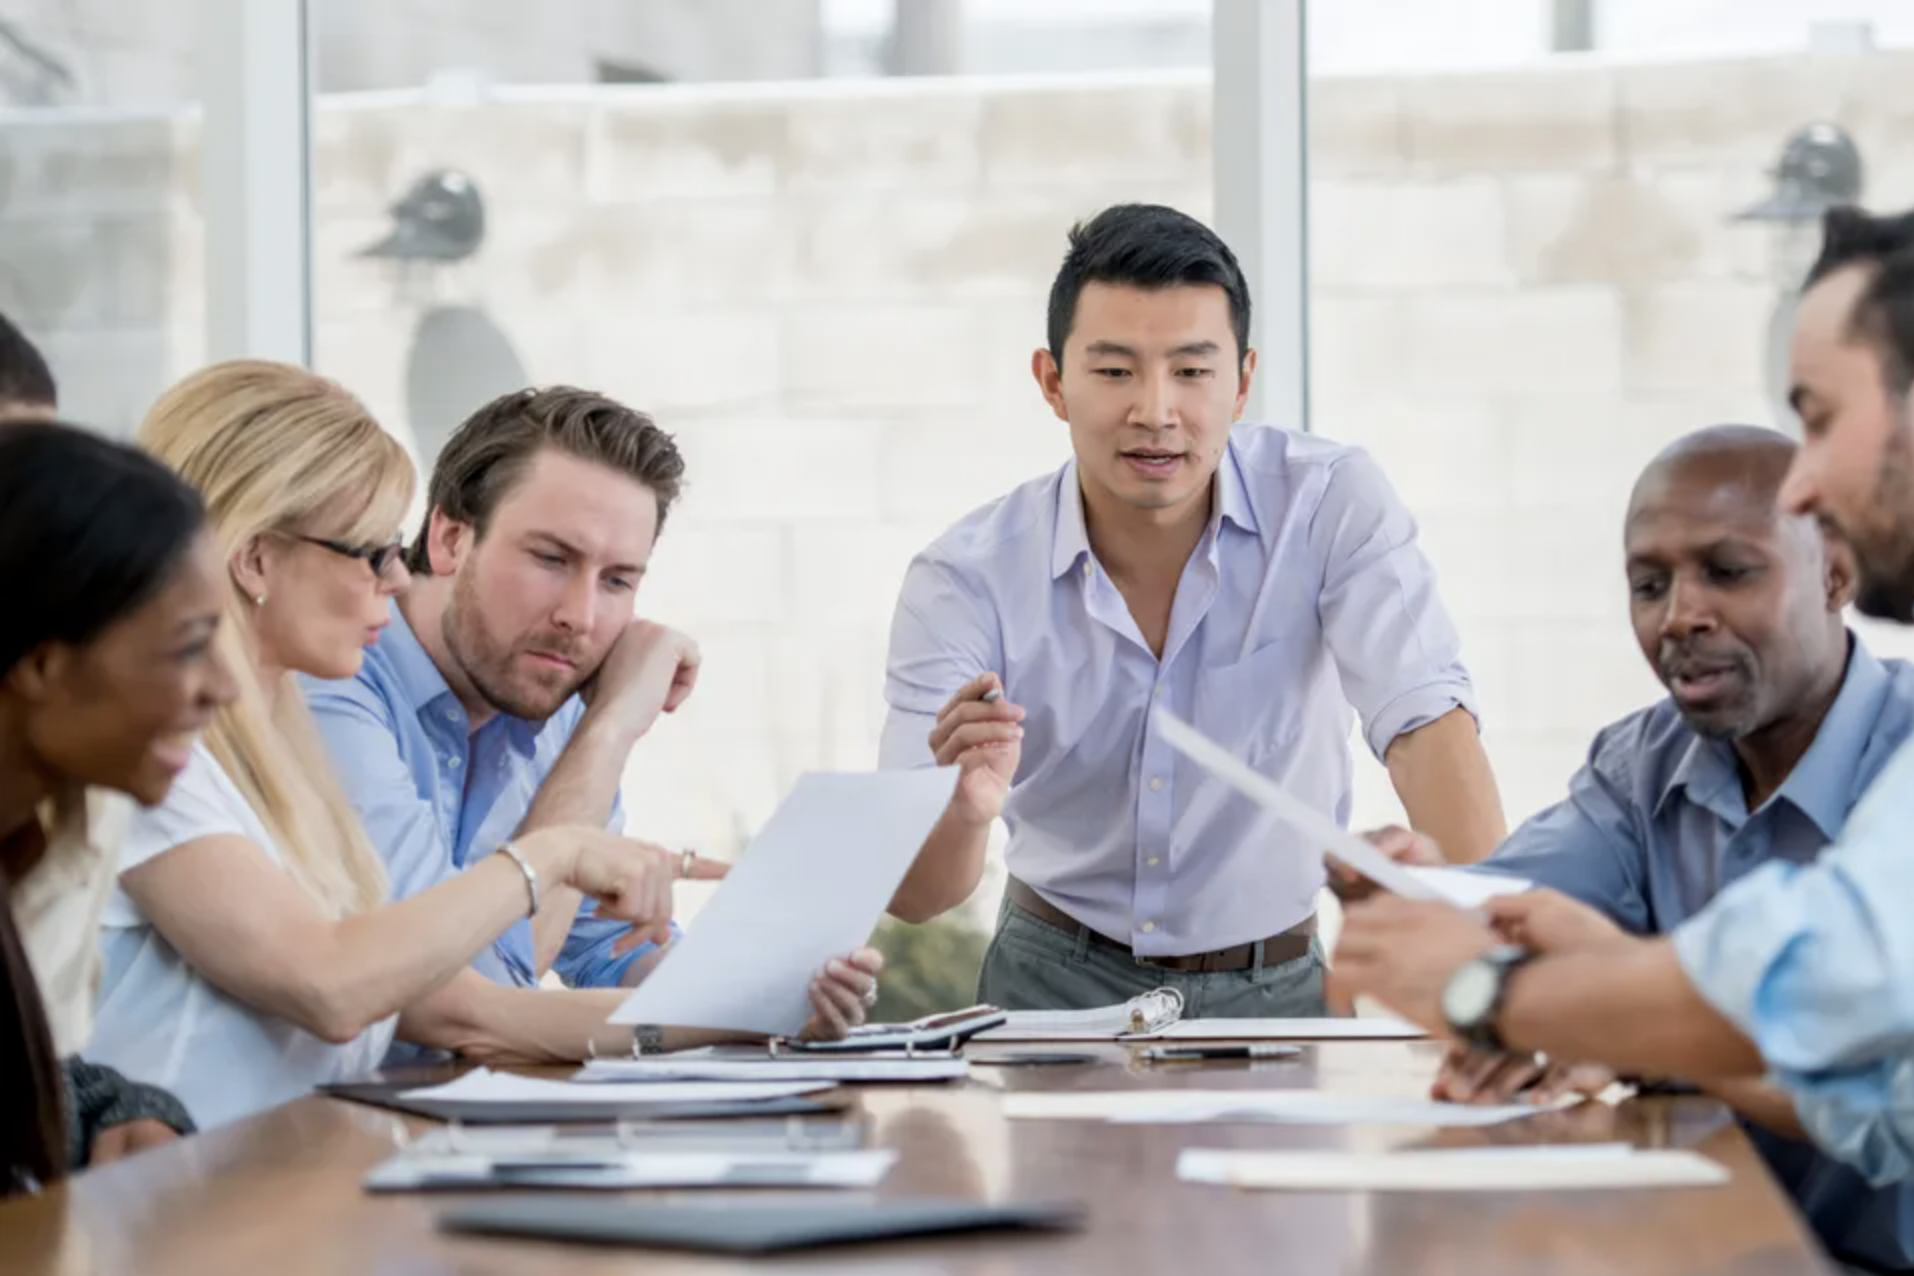 Stock photo of Simu Liu giving a boardroom presentation to a multi-ethnic group of business professionals.